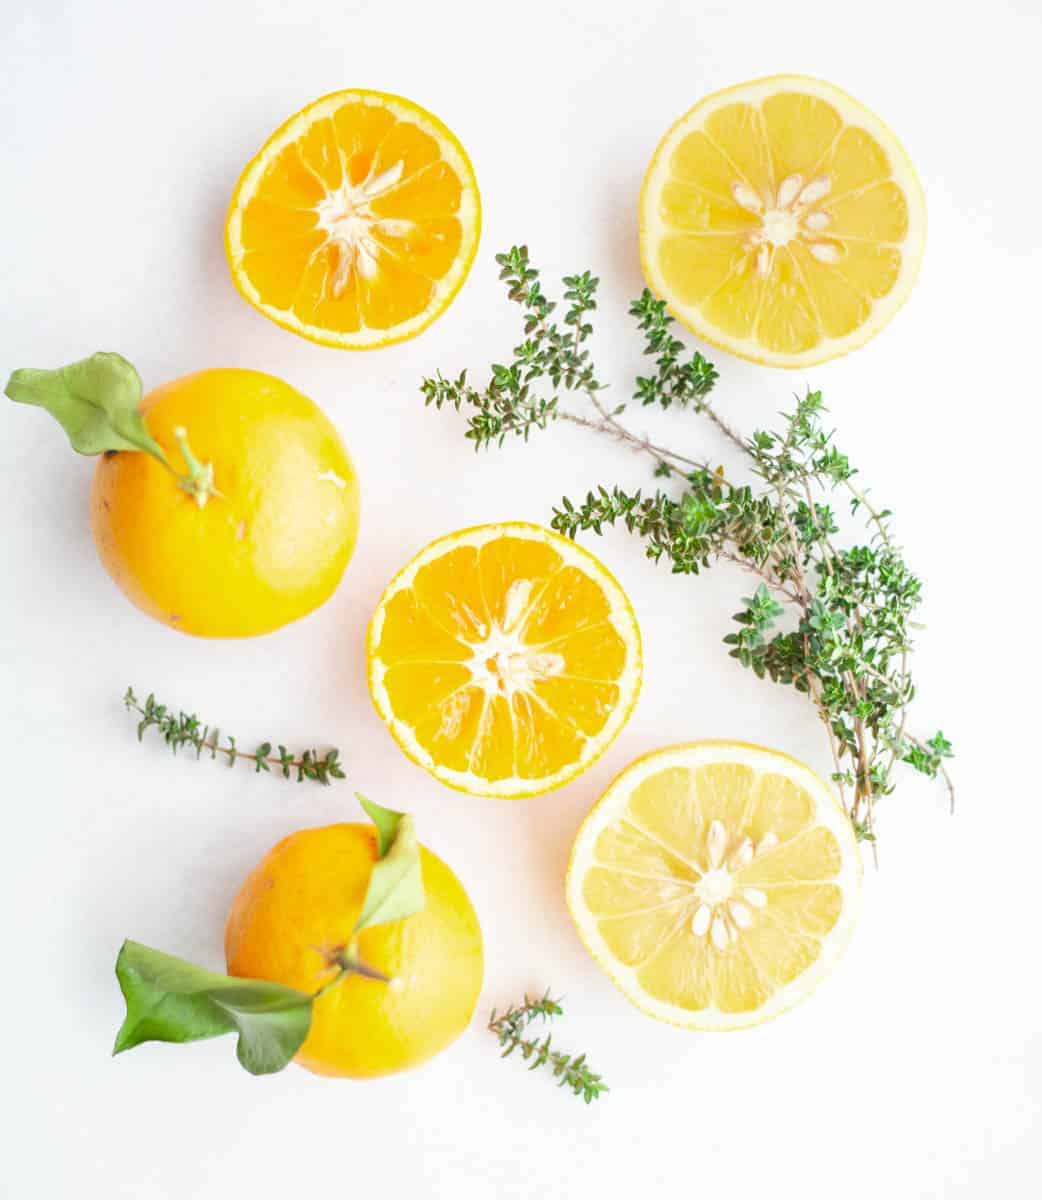 sprigs of thyme and oranges and lemons cut in half on a white background